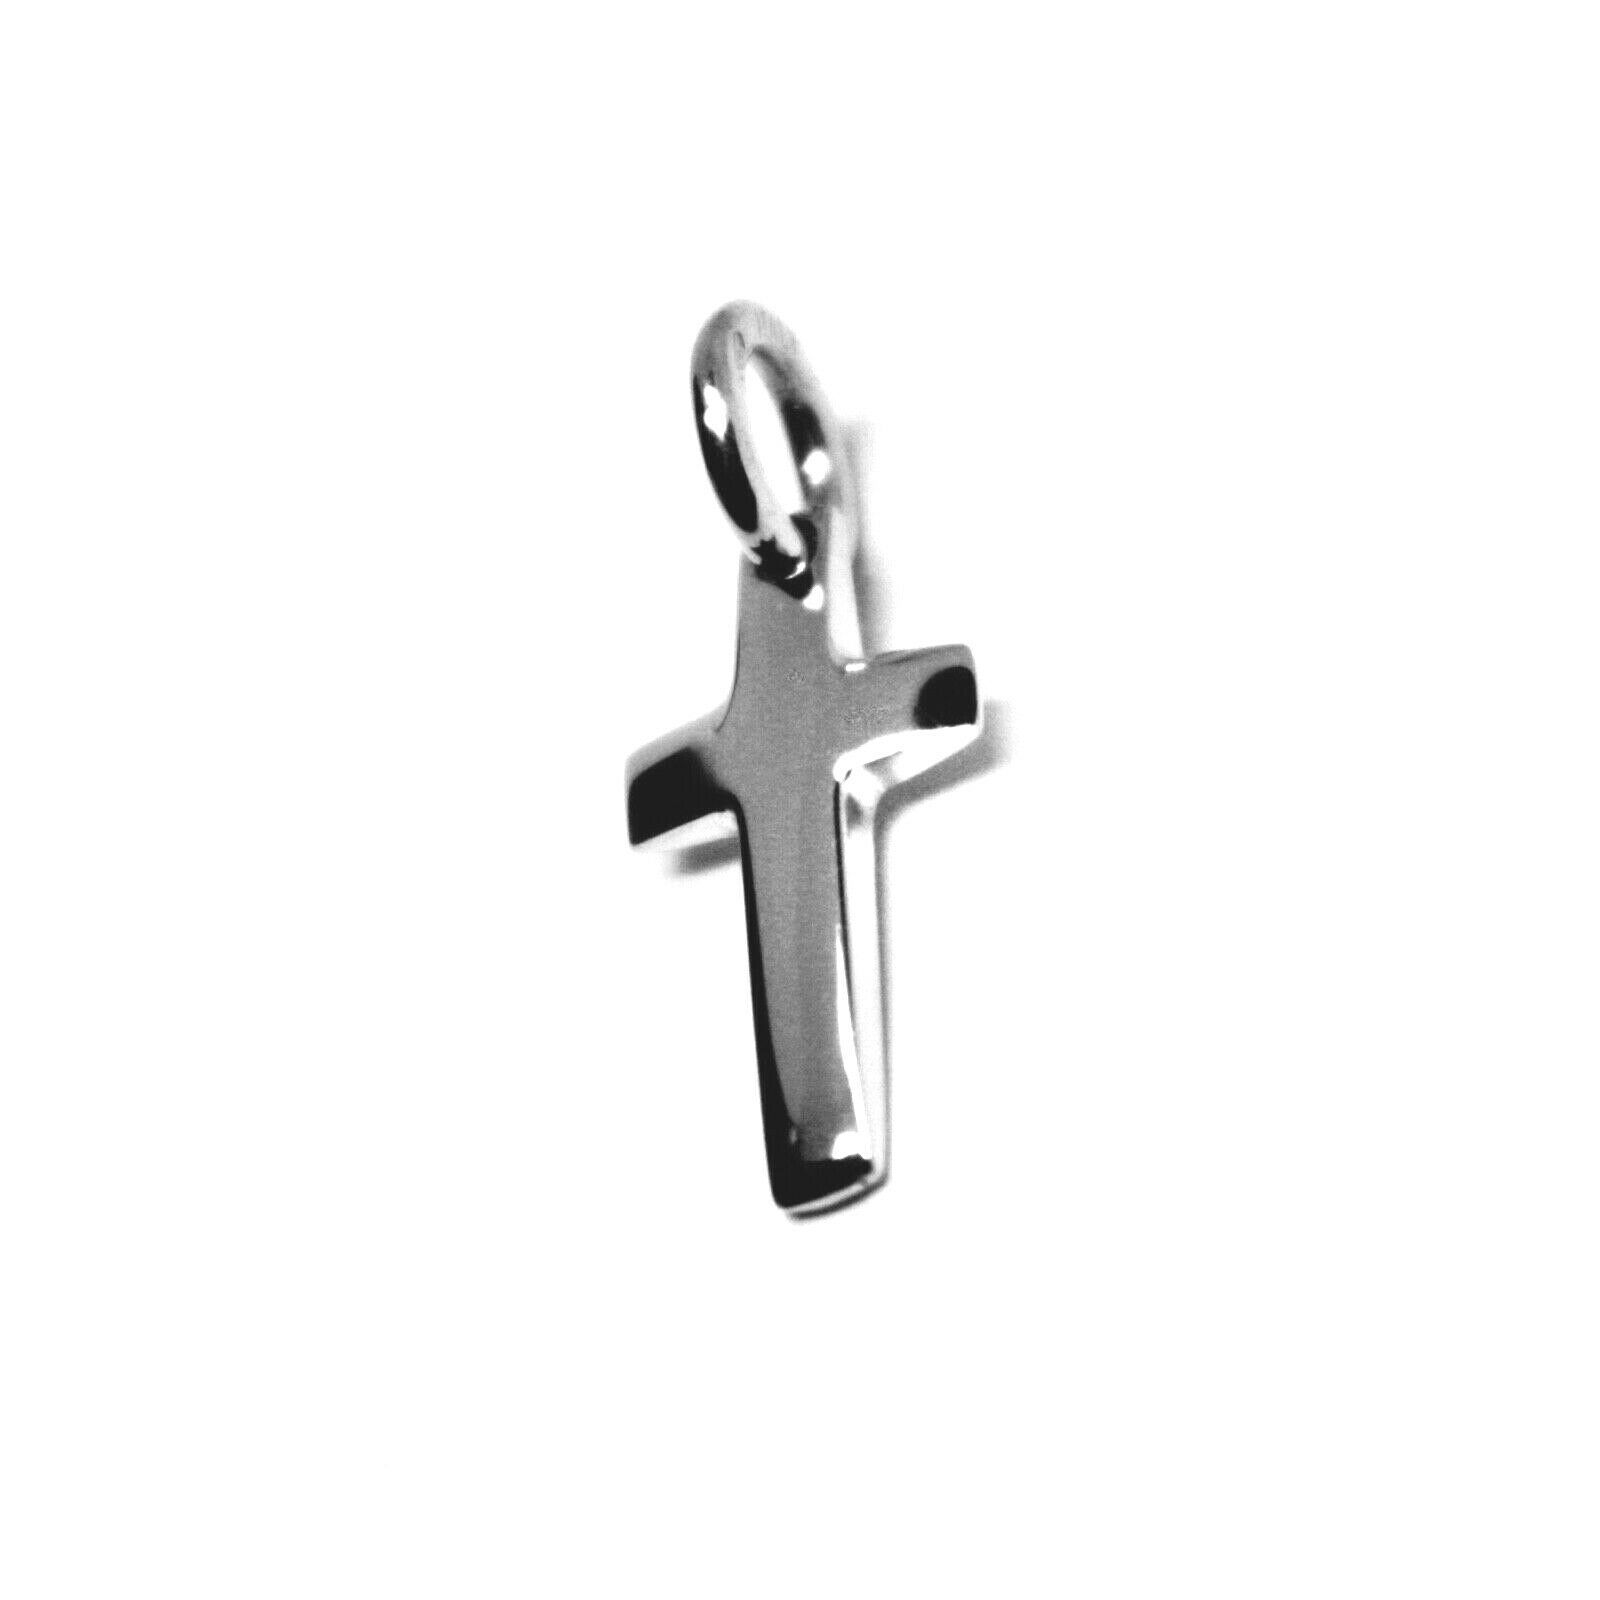 SOLID 18K WHITE GOLD SMALL CROSS 16mm, ROUNDED SMOOTH 2.5mm THICK MADE IN ITALY